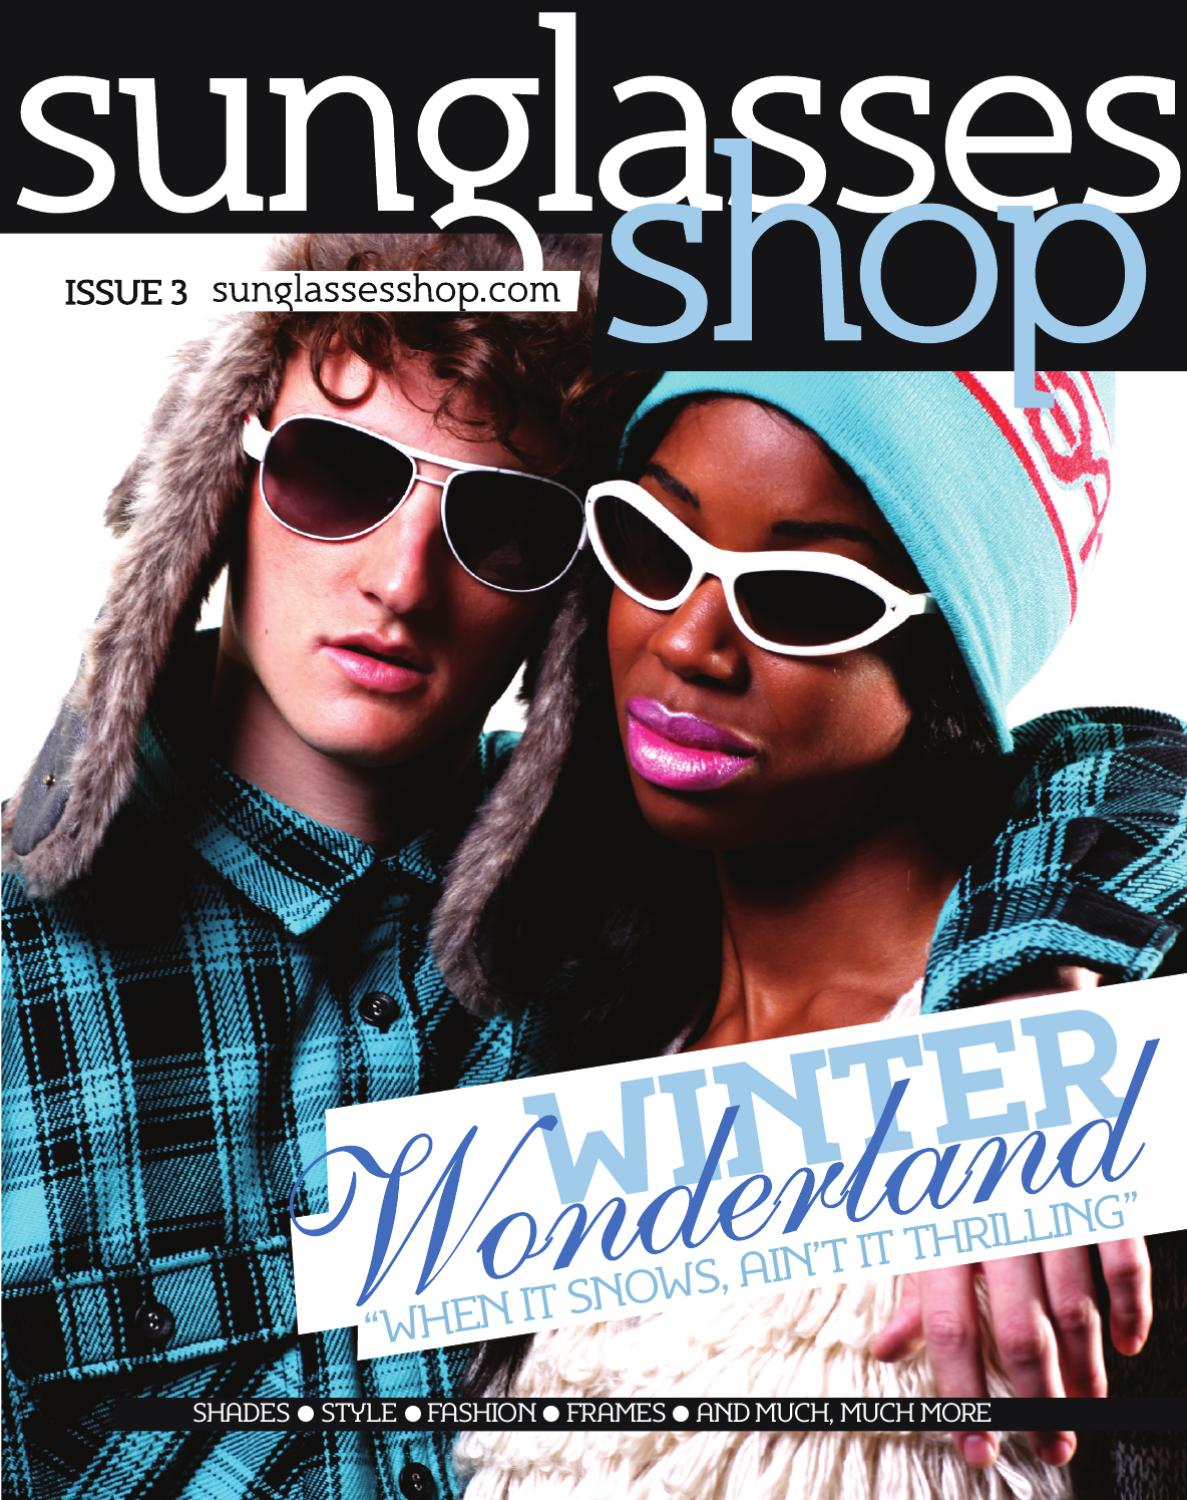 8ab3d230292a Sunglasses Shop Magazine Issue 3 by Sunglasses Shop - issuu